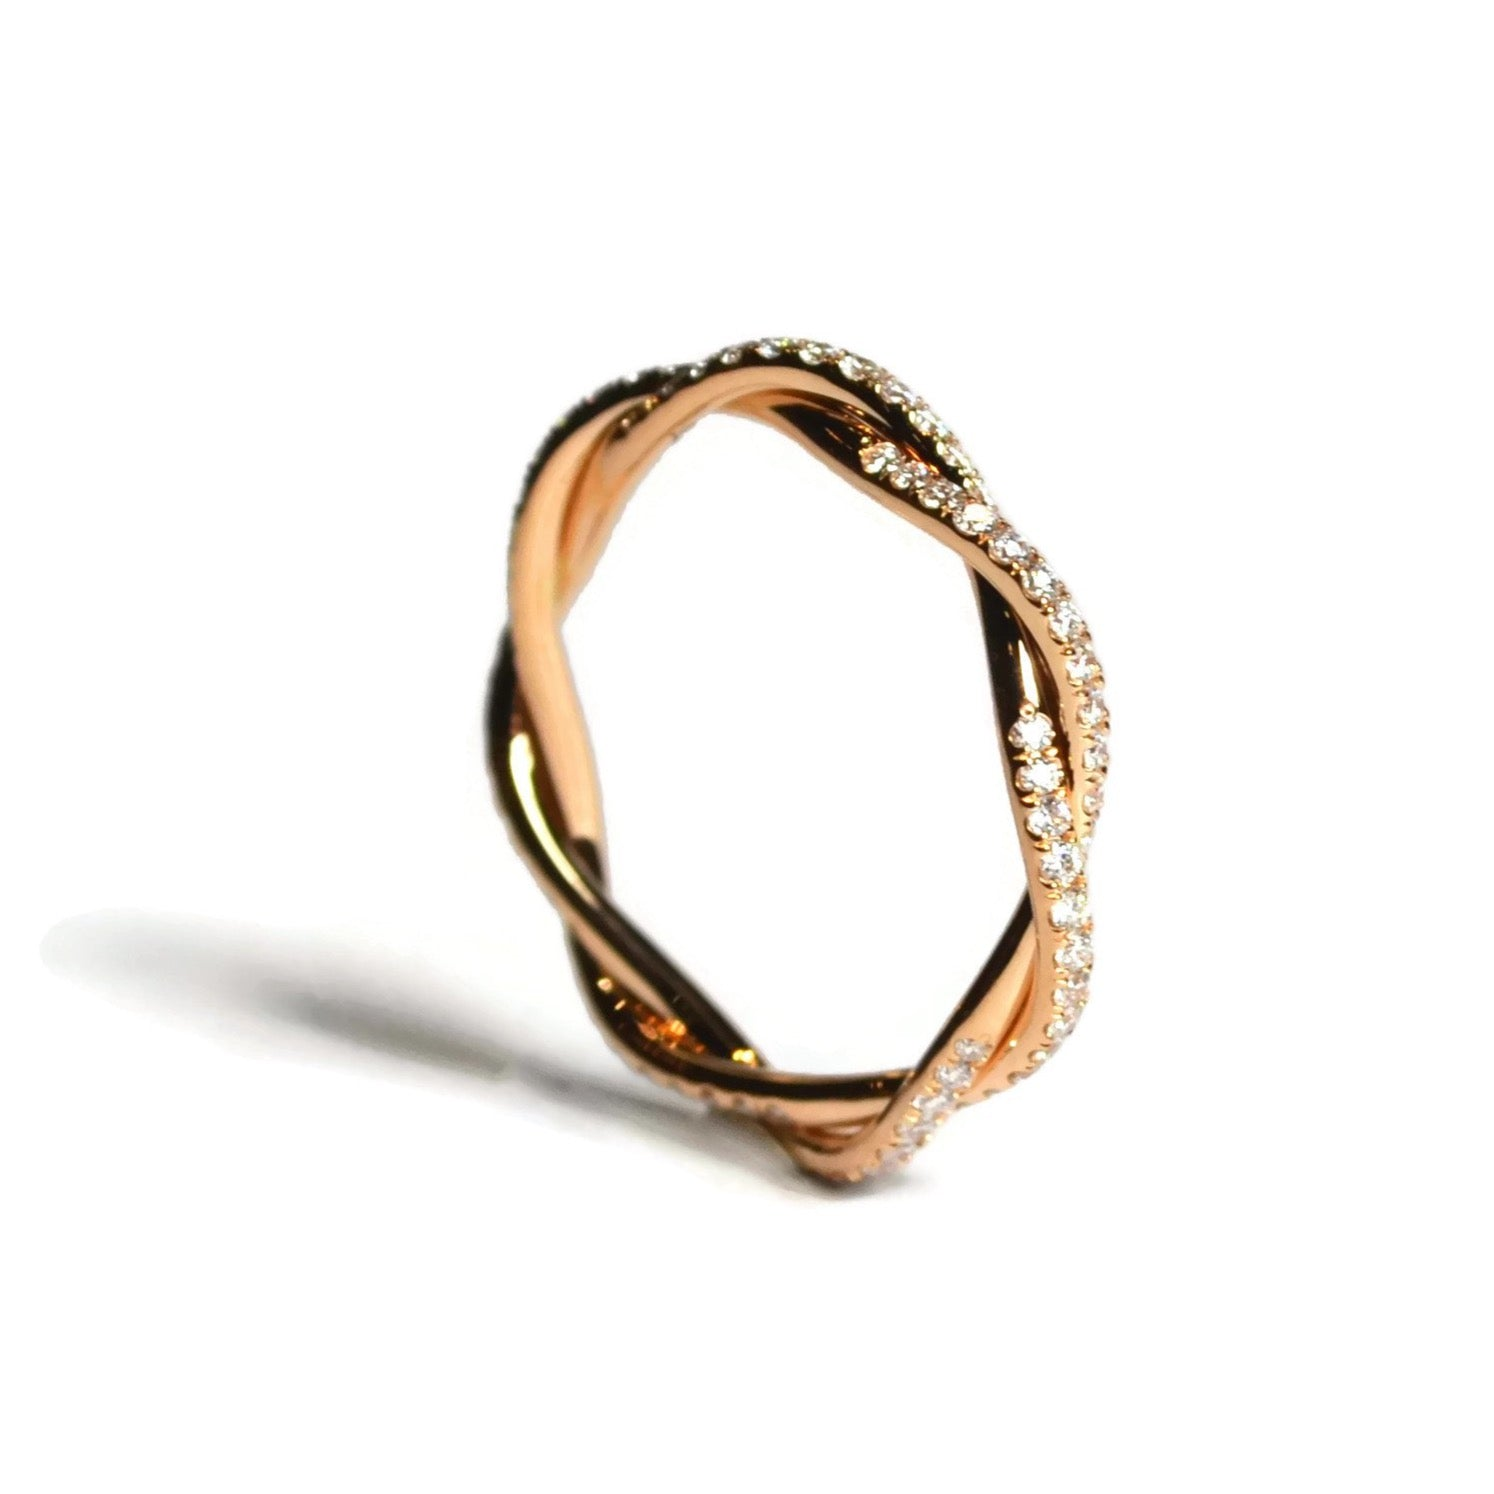 AF-JEWELERS-TWISTED-ETERNITY-DIAMONDS-BAND-18K-ROSE-GOLD-1-RG-1564